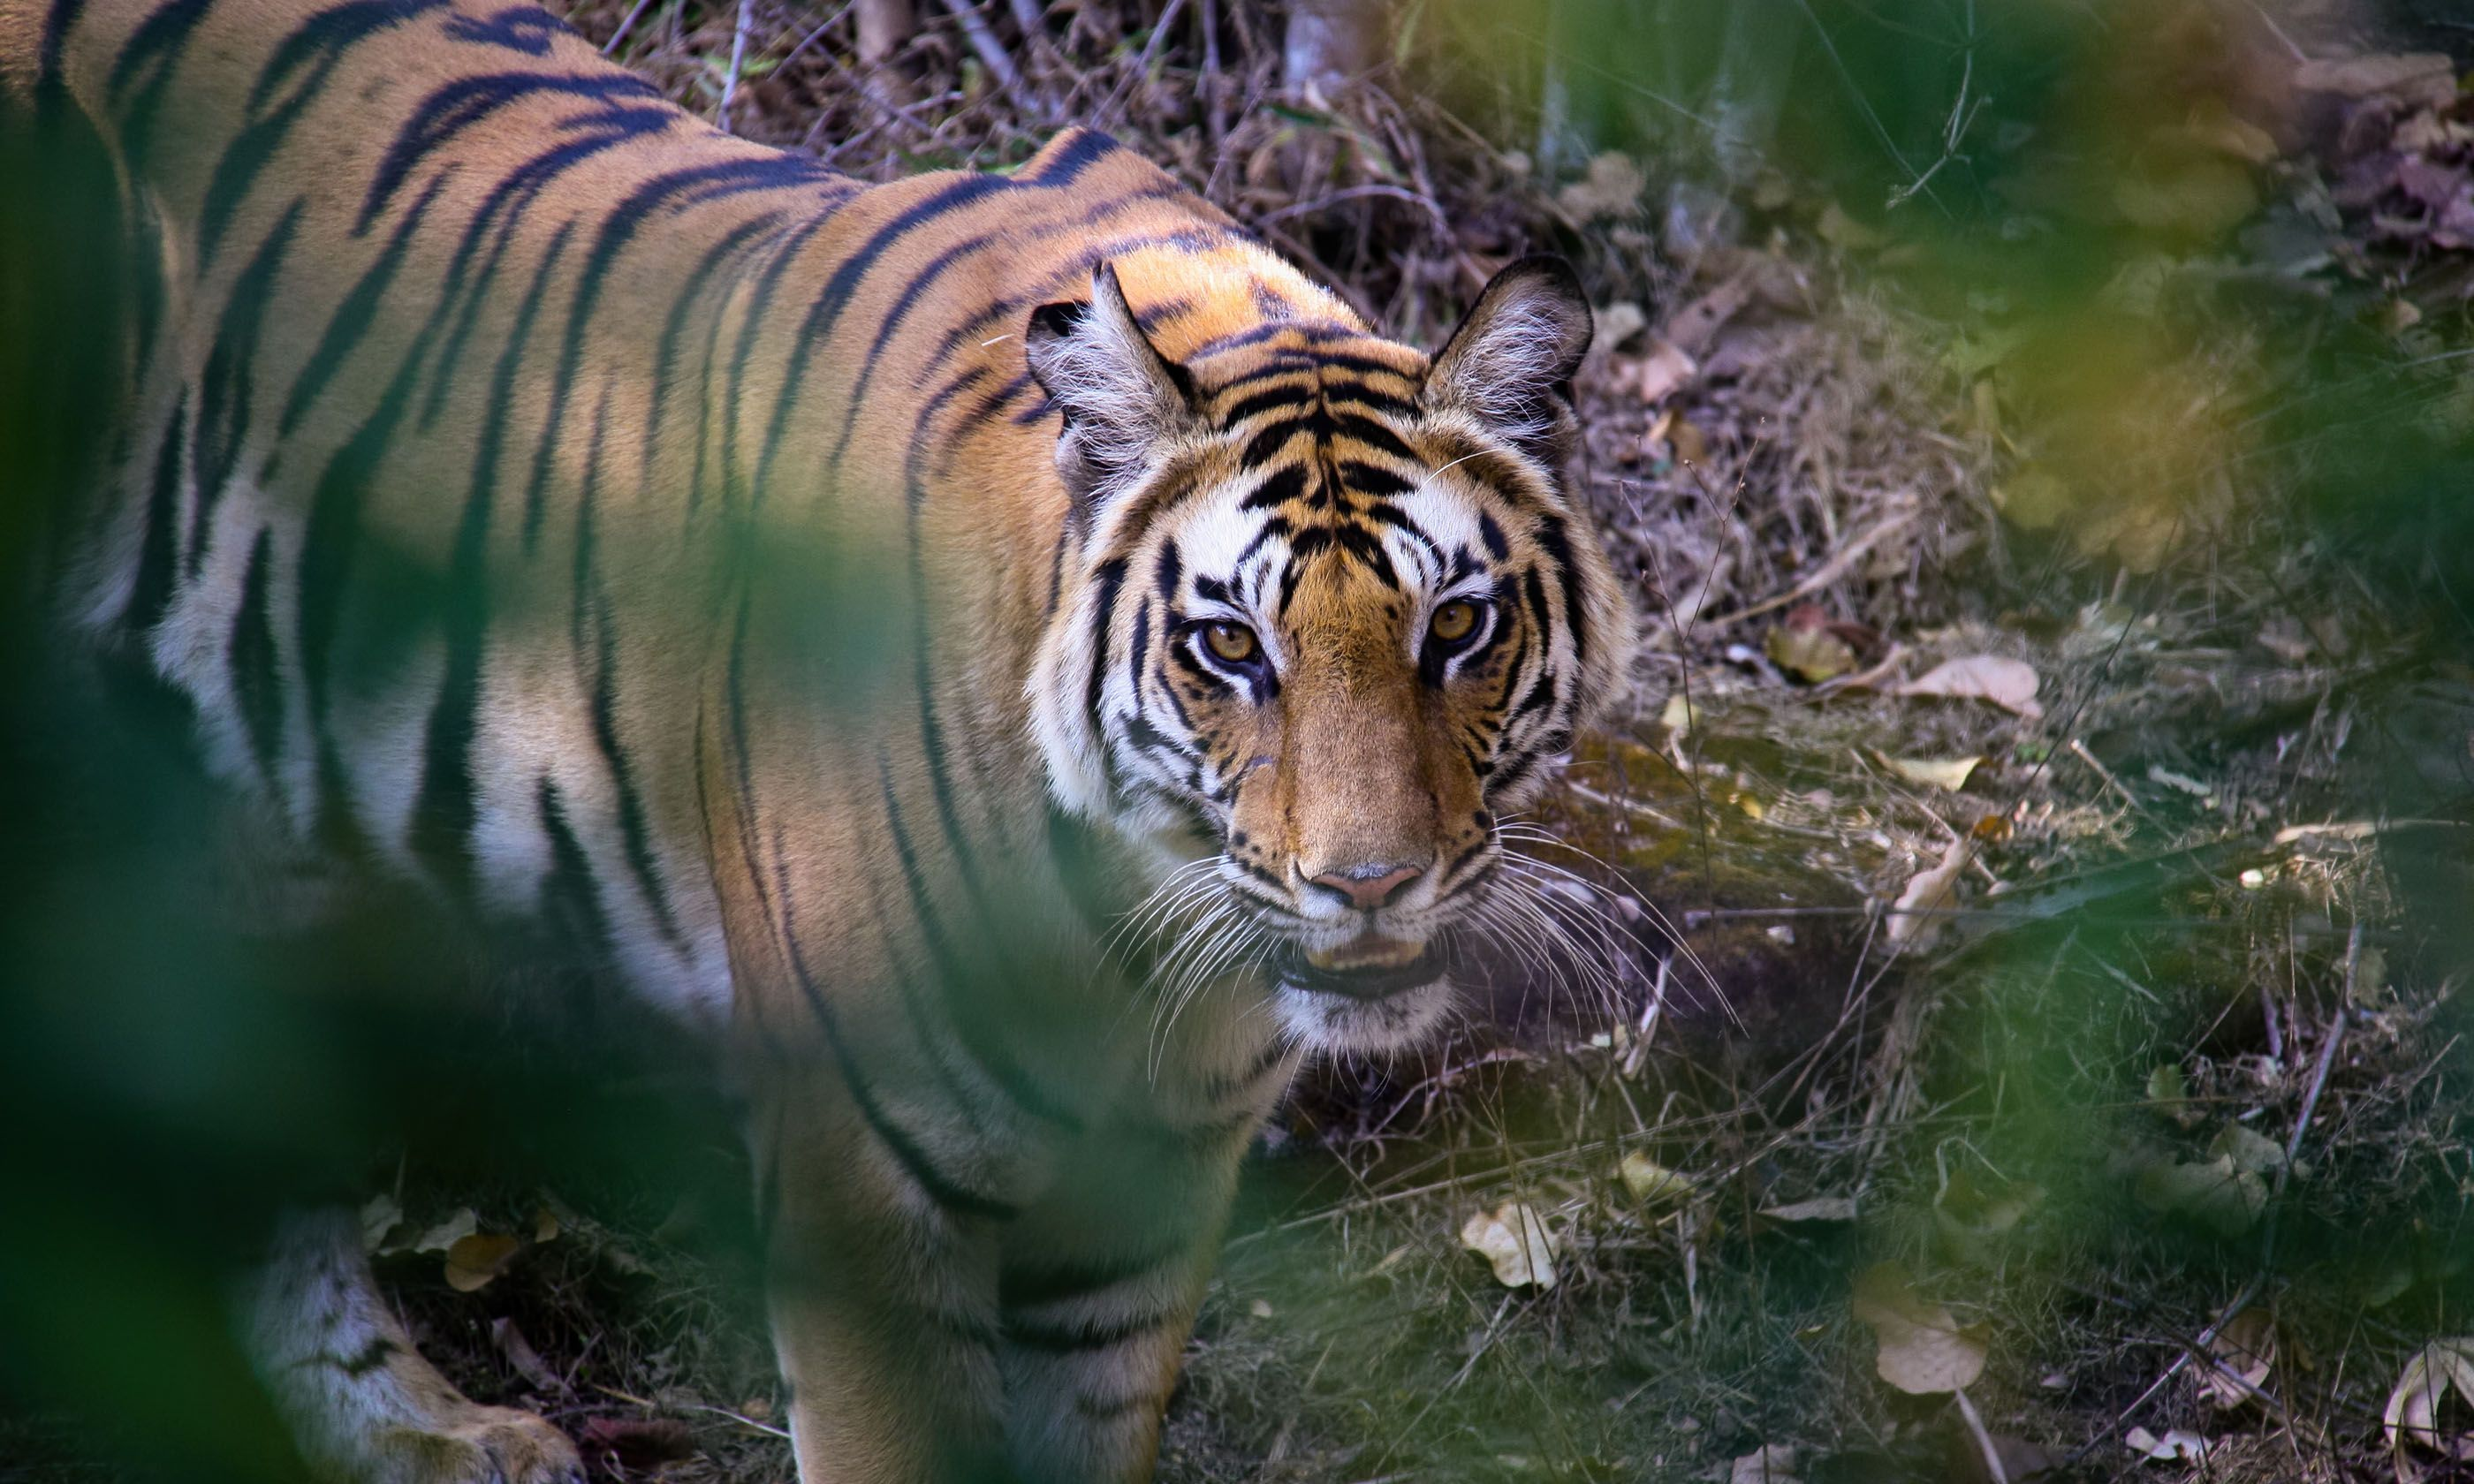 Tiger in Bandhavgarh National Park, India (Dreamstime)